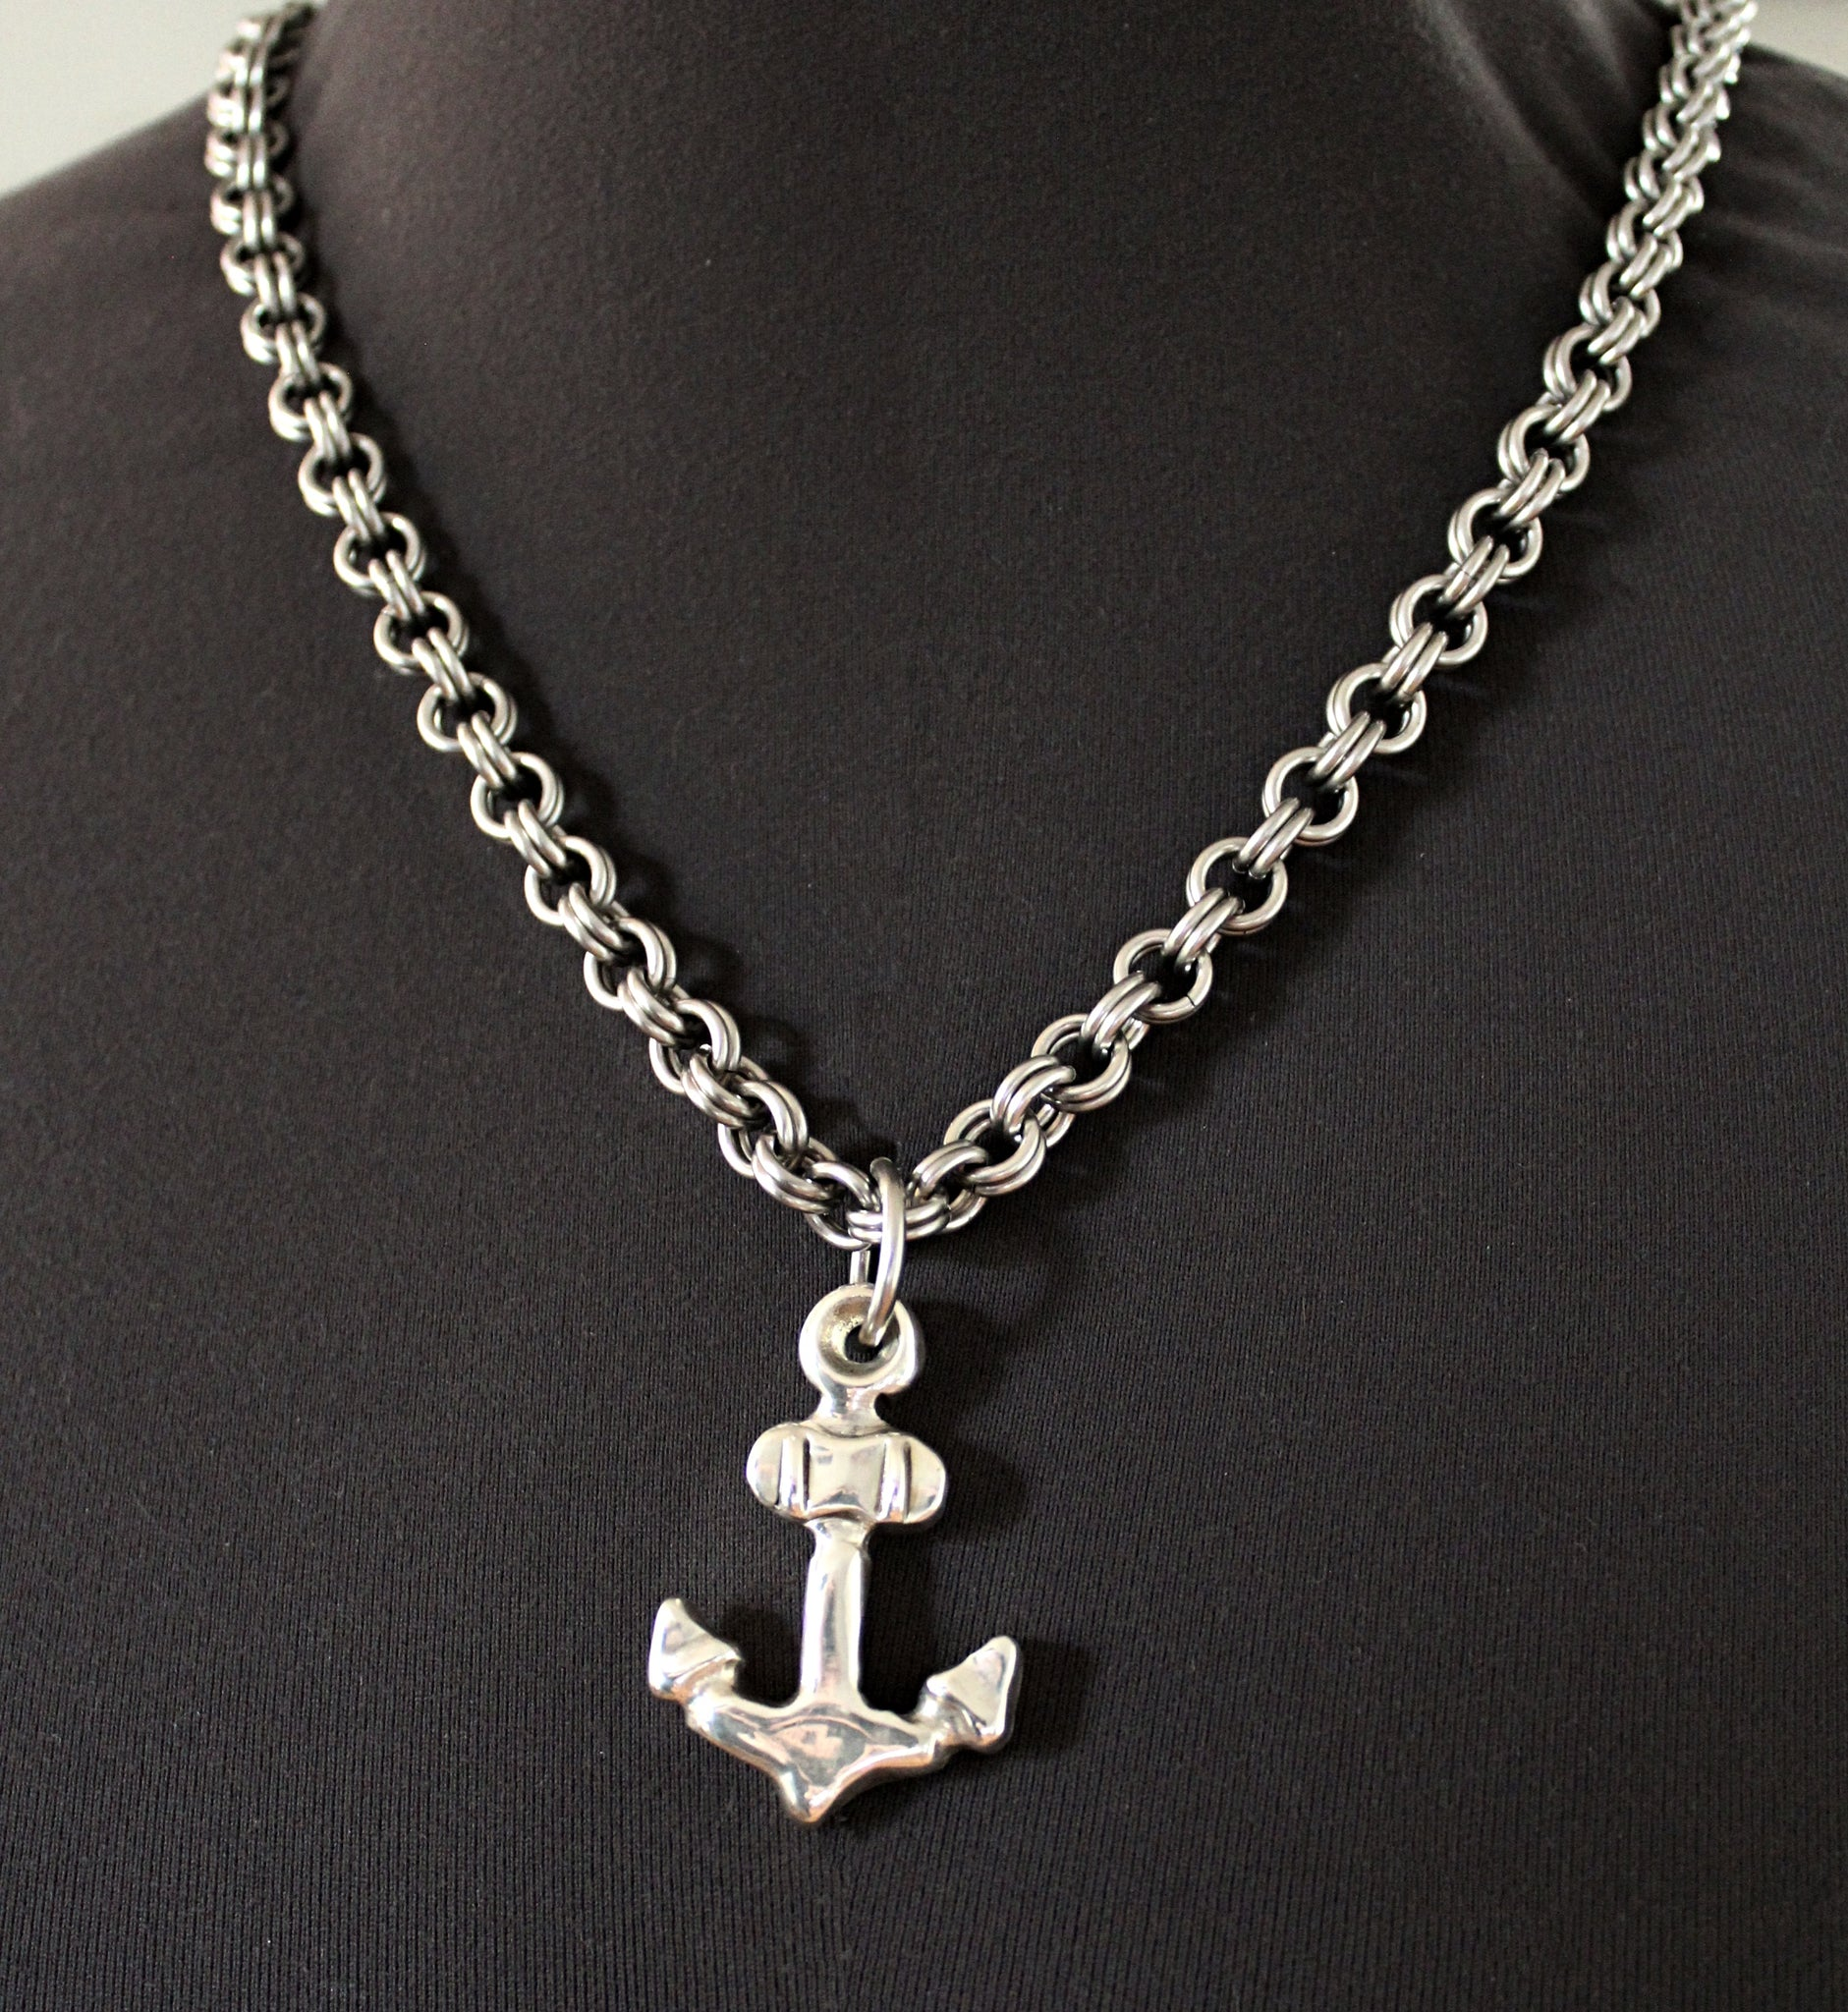 sterling silver anchor pendant with thick chain by san filippo leather